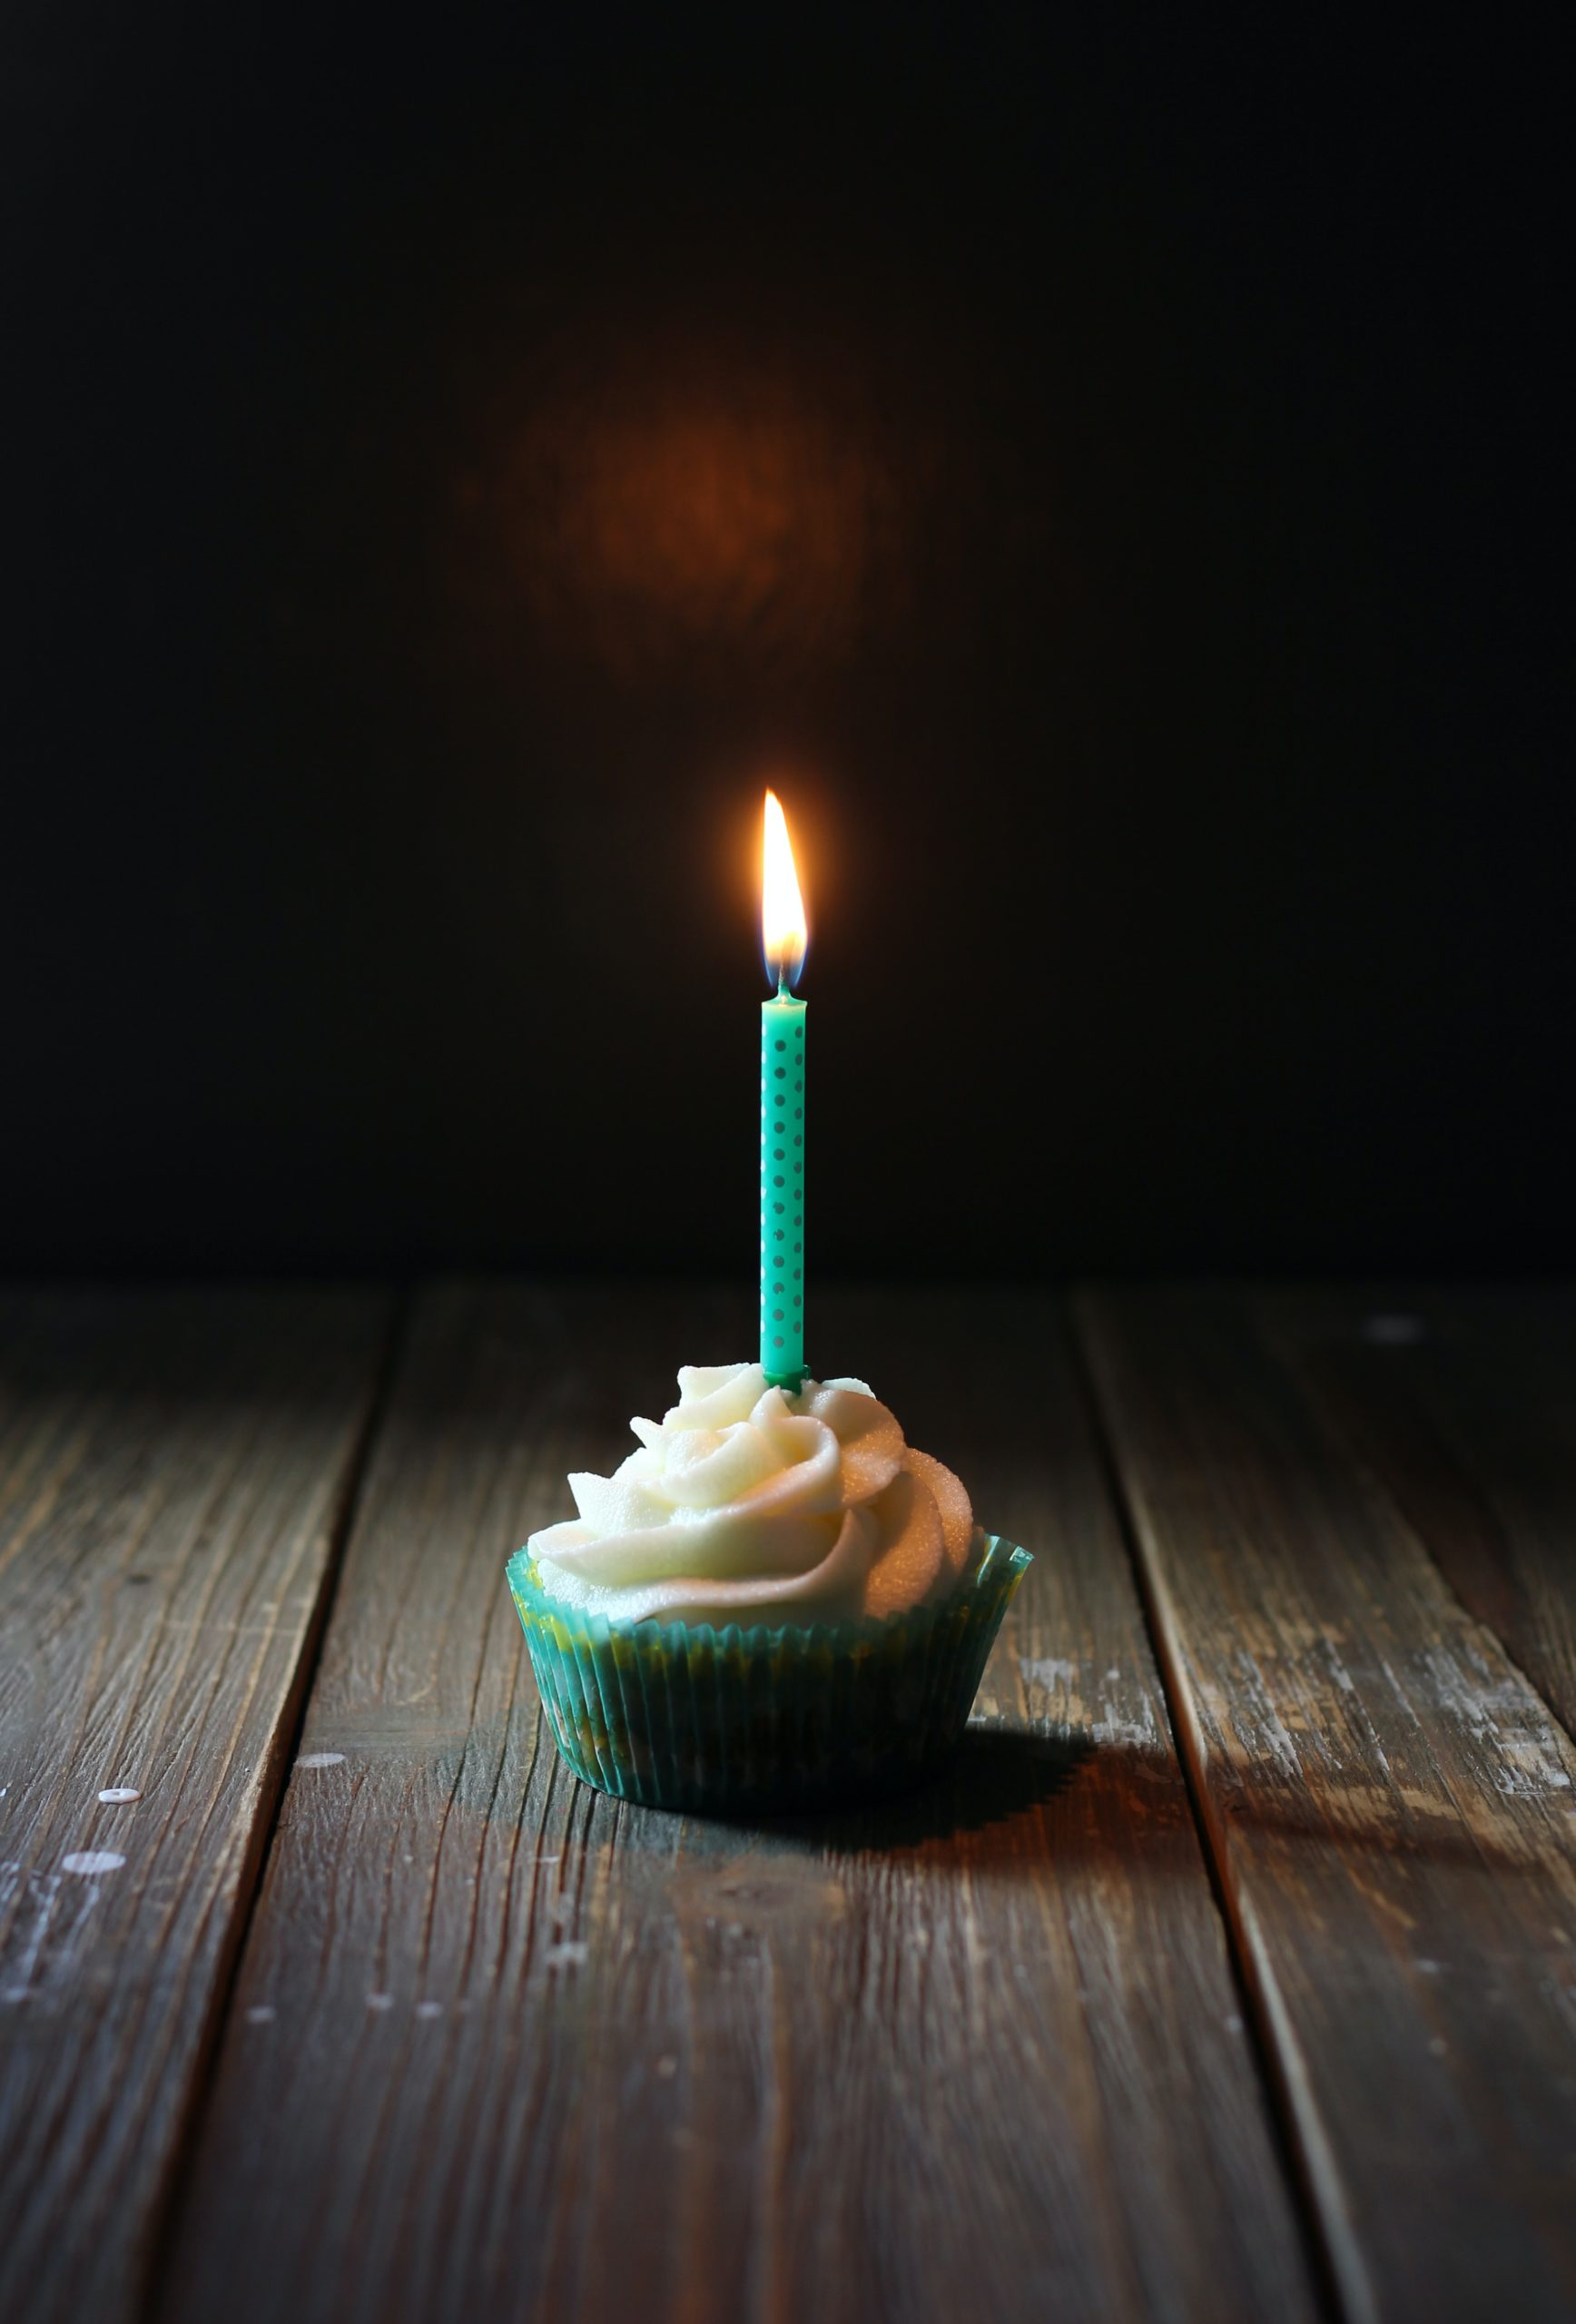 Cupcake with a candle